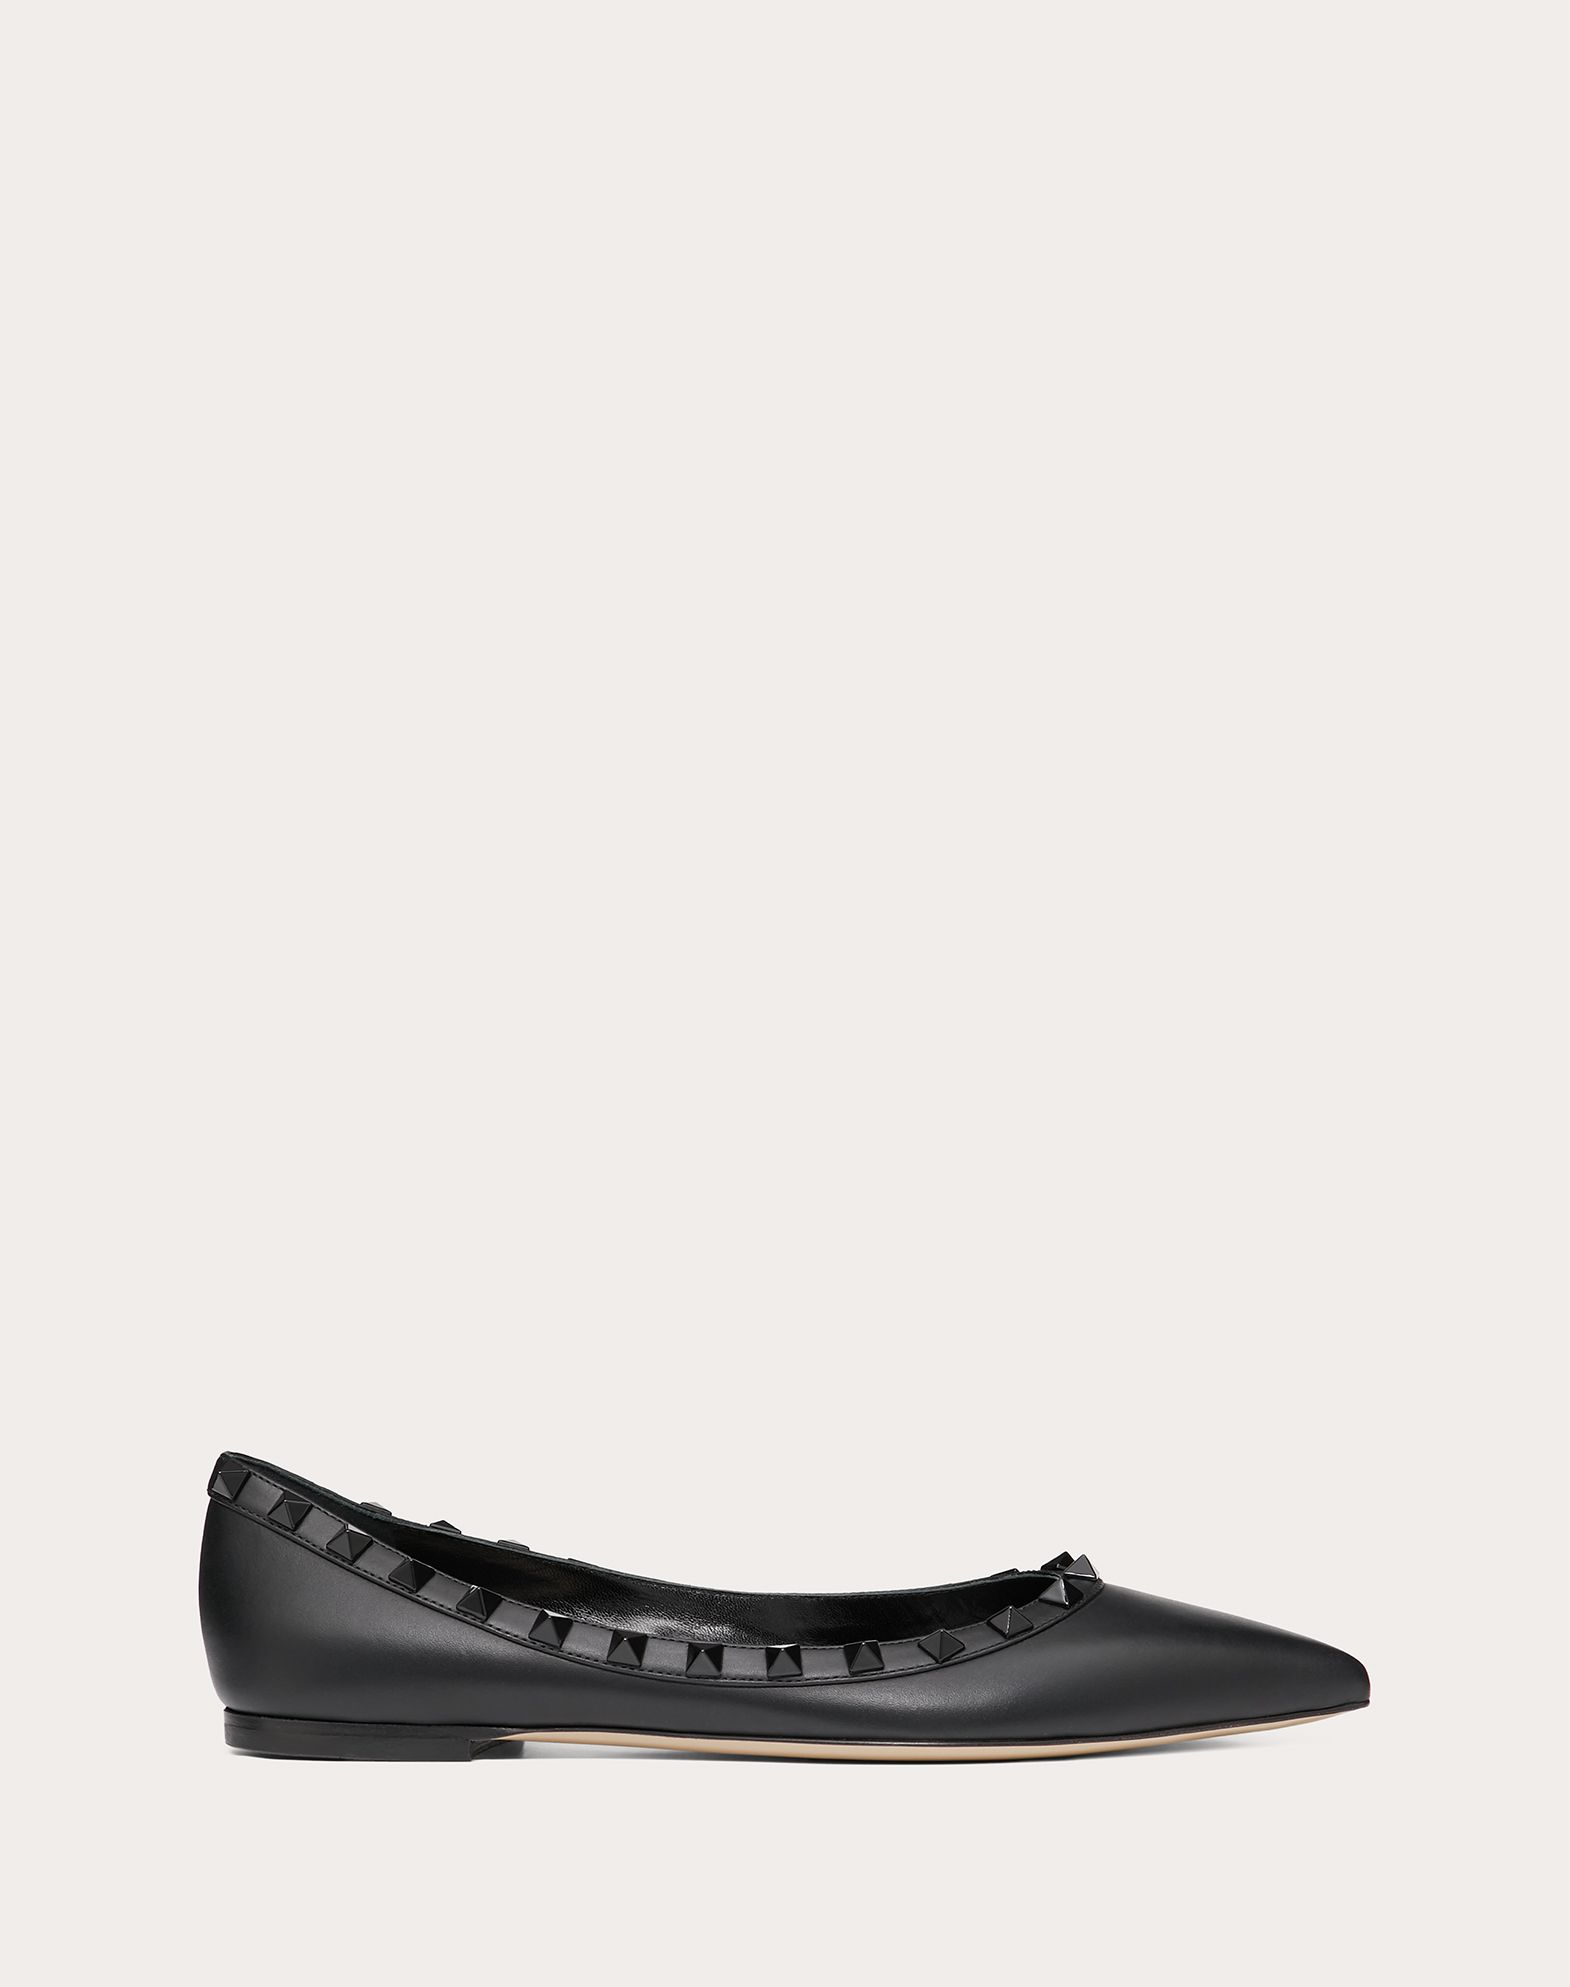 Rockstud  Calfskin Leather Ballet Flat with Tonal Studs